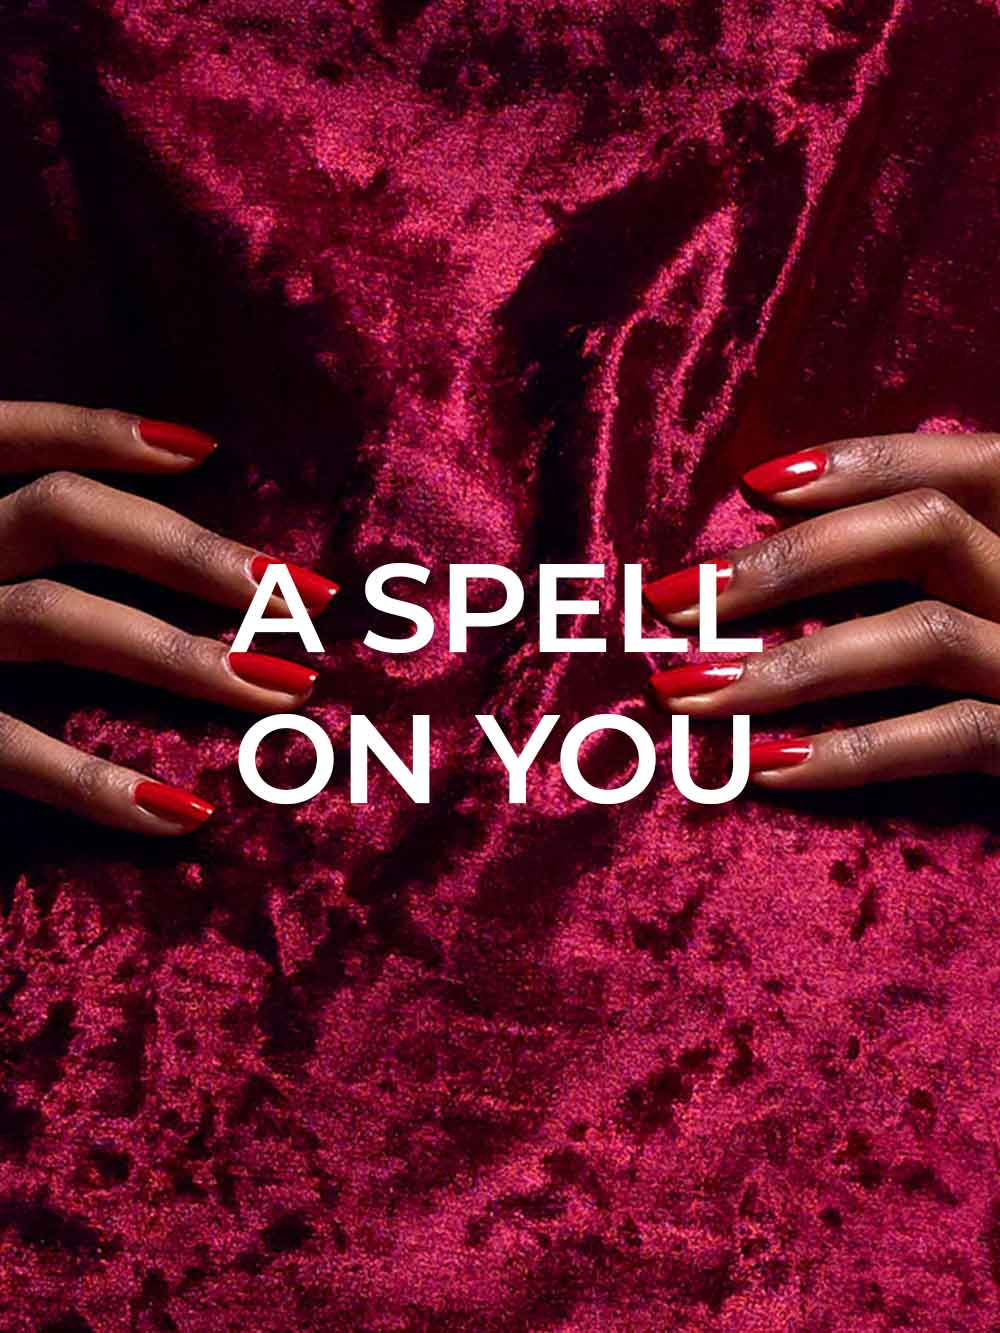 A-SPELL-ON-YOU-COVER.jpg